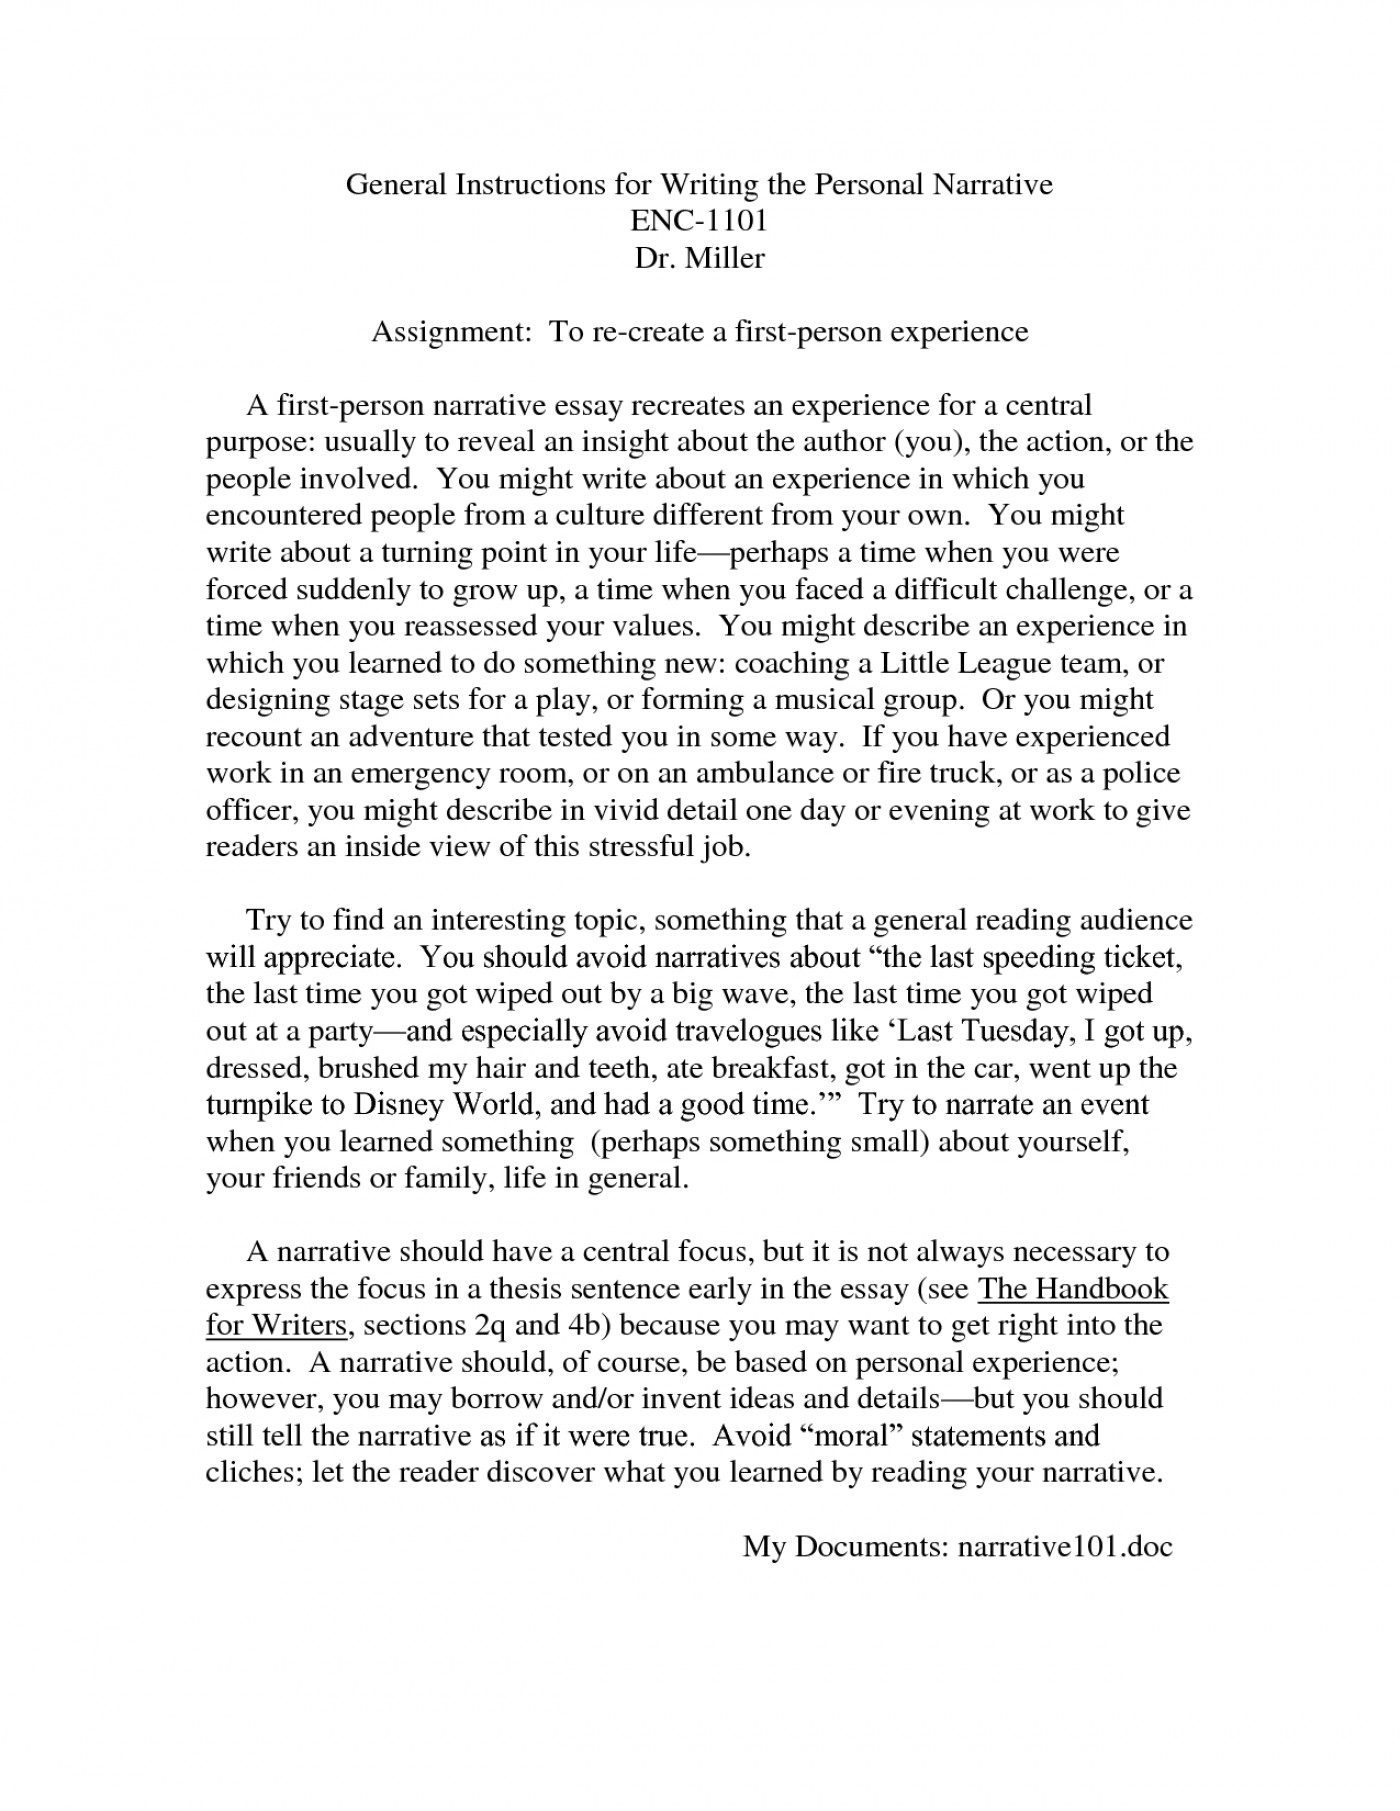 009 Zgup350miv Essay Example Of Imposing A Narrative Introduction Format About Love 1400